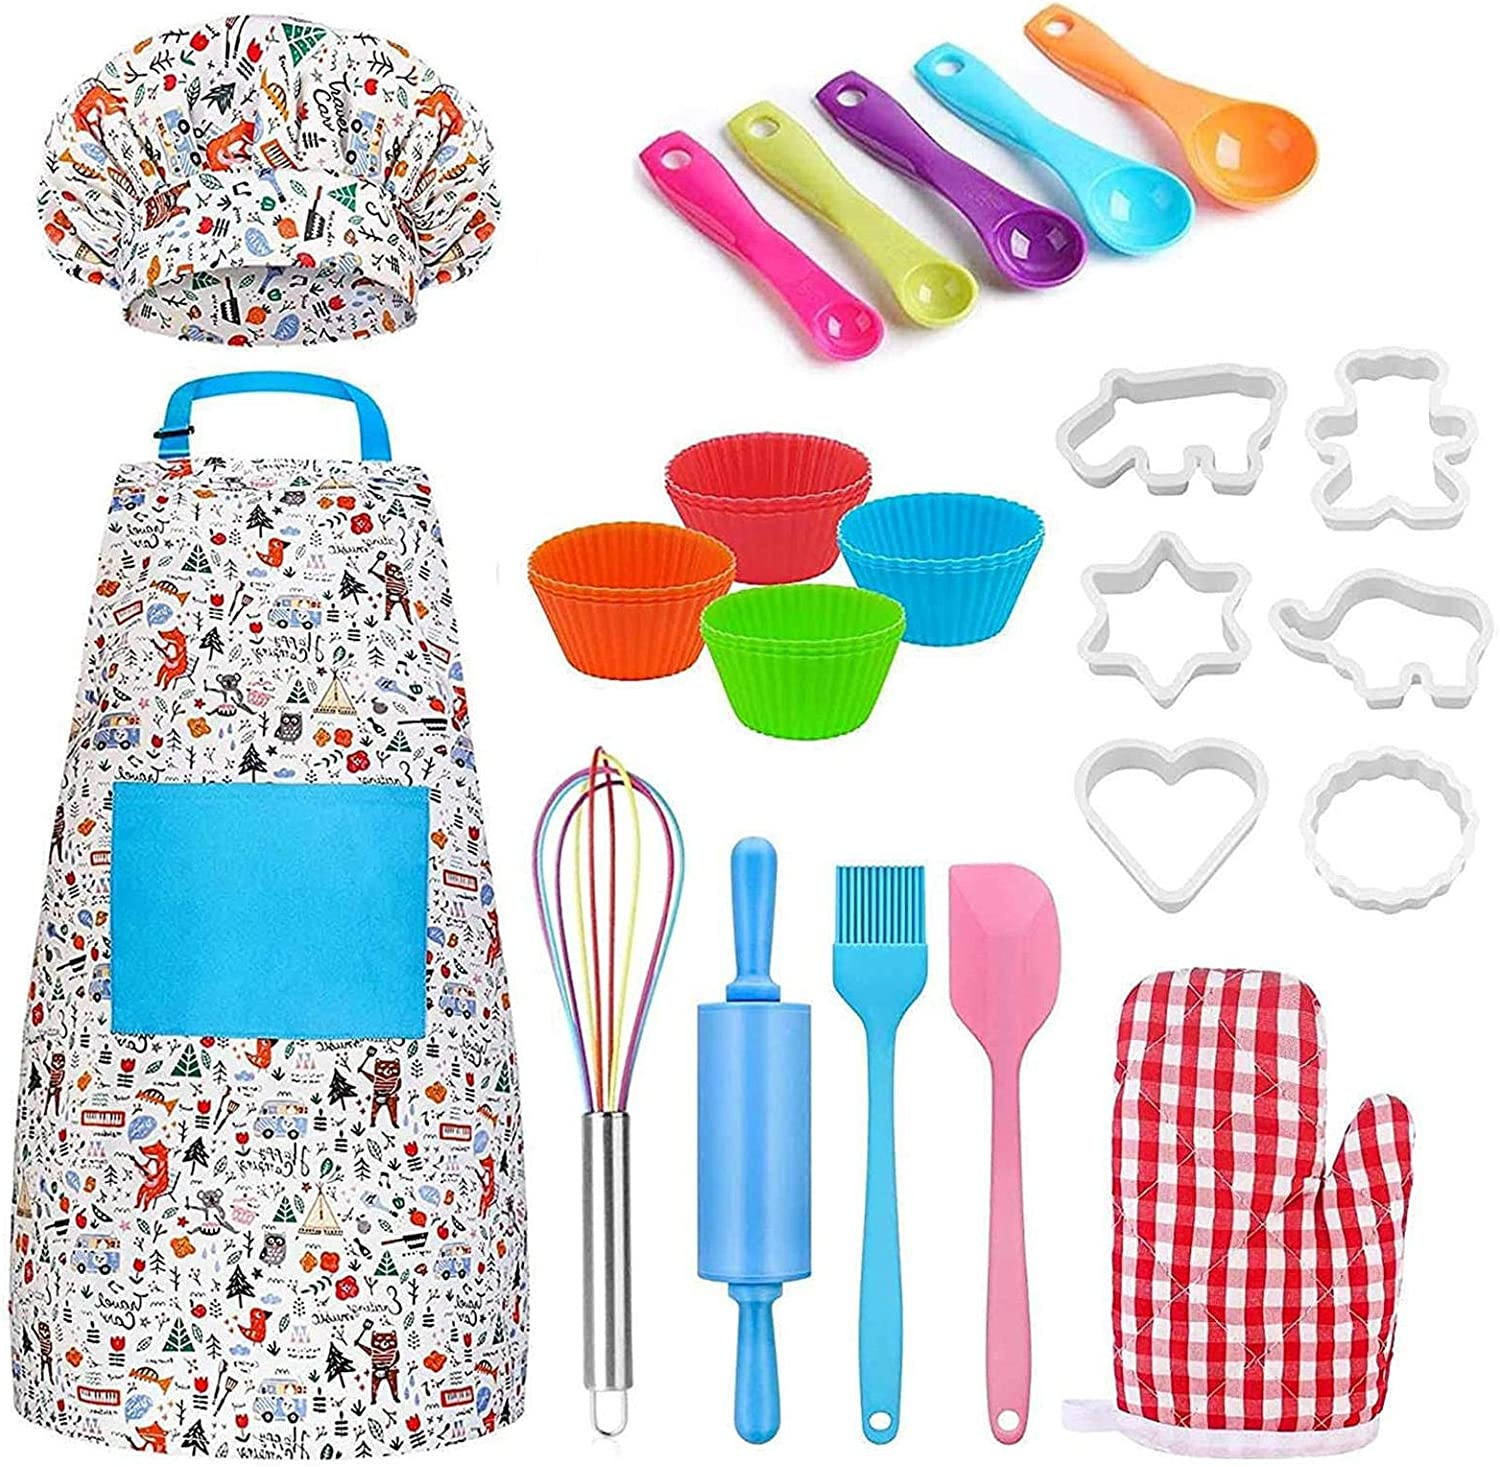 KIDS BAKING SET FOR KIDS 30 PCS KIDS COOKING SETS REAL TOOLS INCLUDES APRON CHEF HAT OVEN MITT ROLLING PIN WHISK SPATULA MEASURING SPOONS SILICONE CUP FOR KIDS CHEF ROLE PLAY